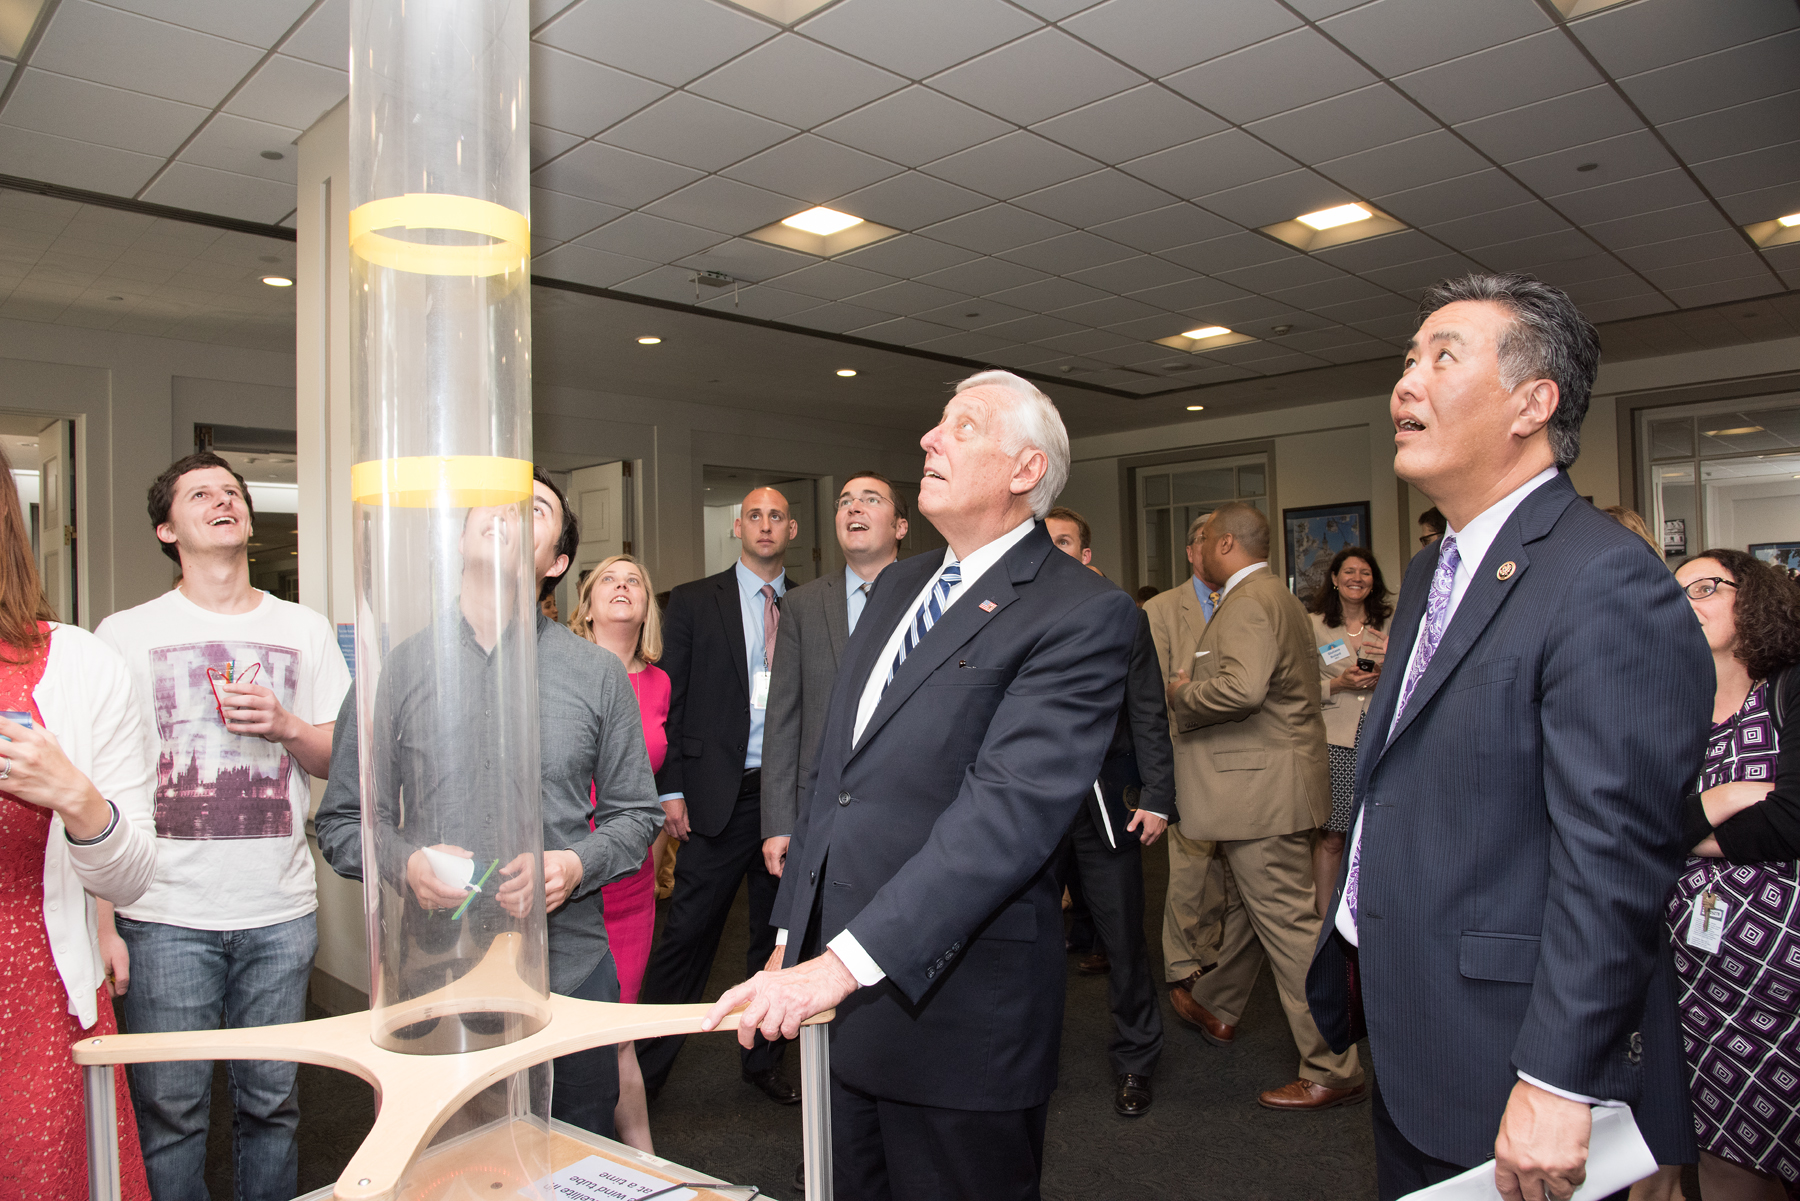 Representatives Steny Hoyer (left) and Mark Takano (right) enjoy the Museum of Science, Boston's Faire activity.